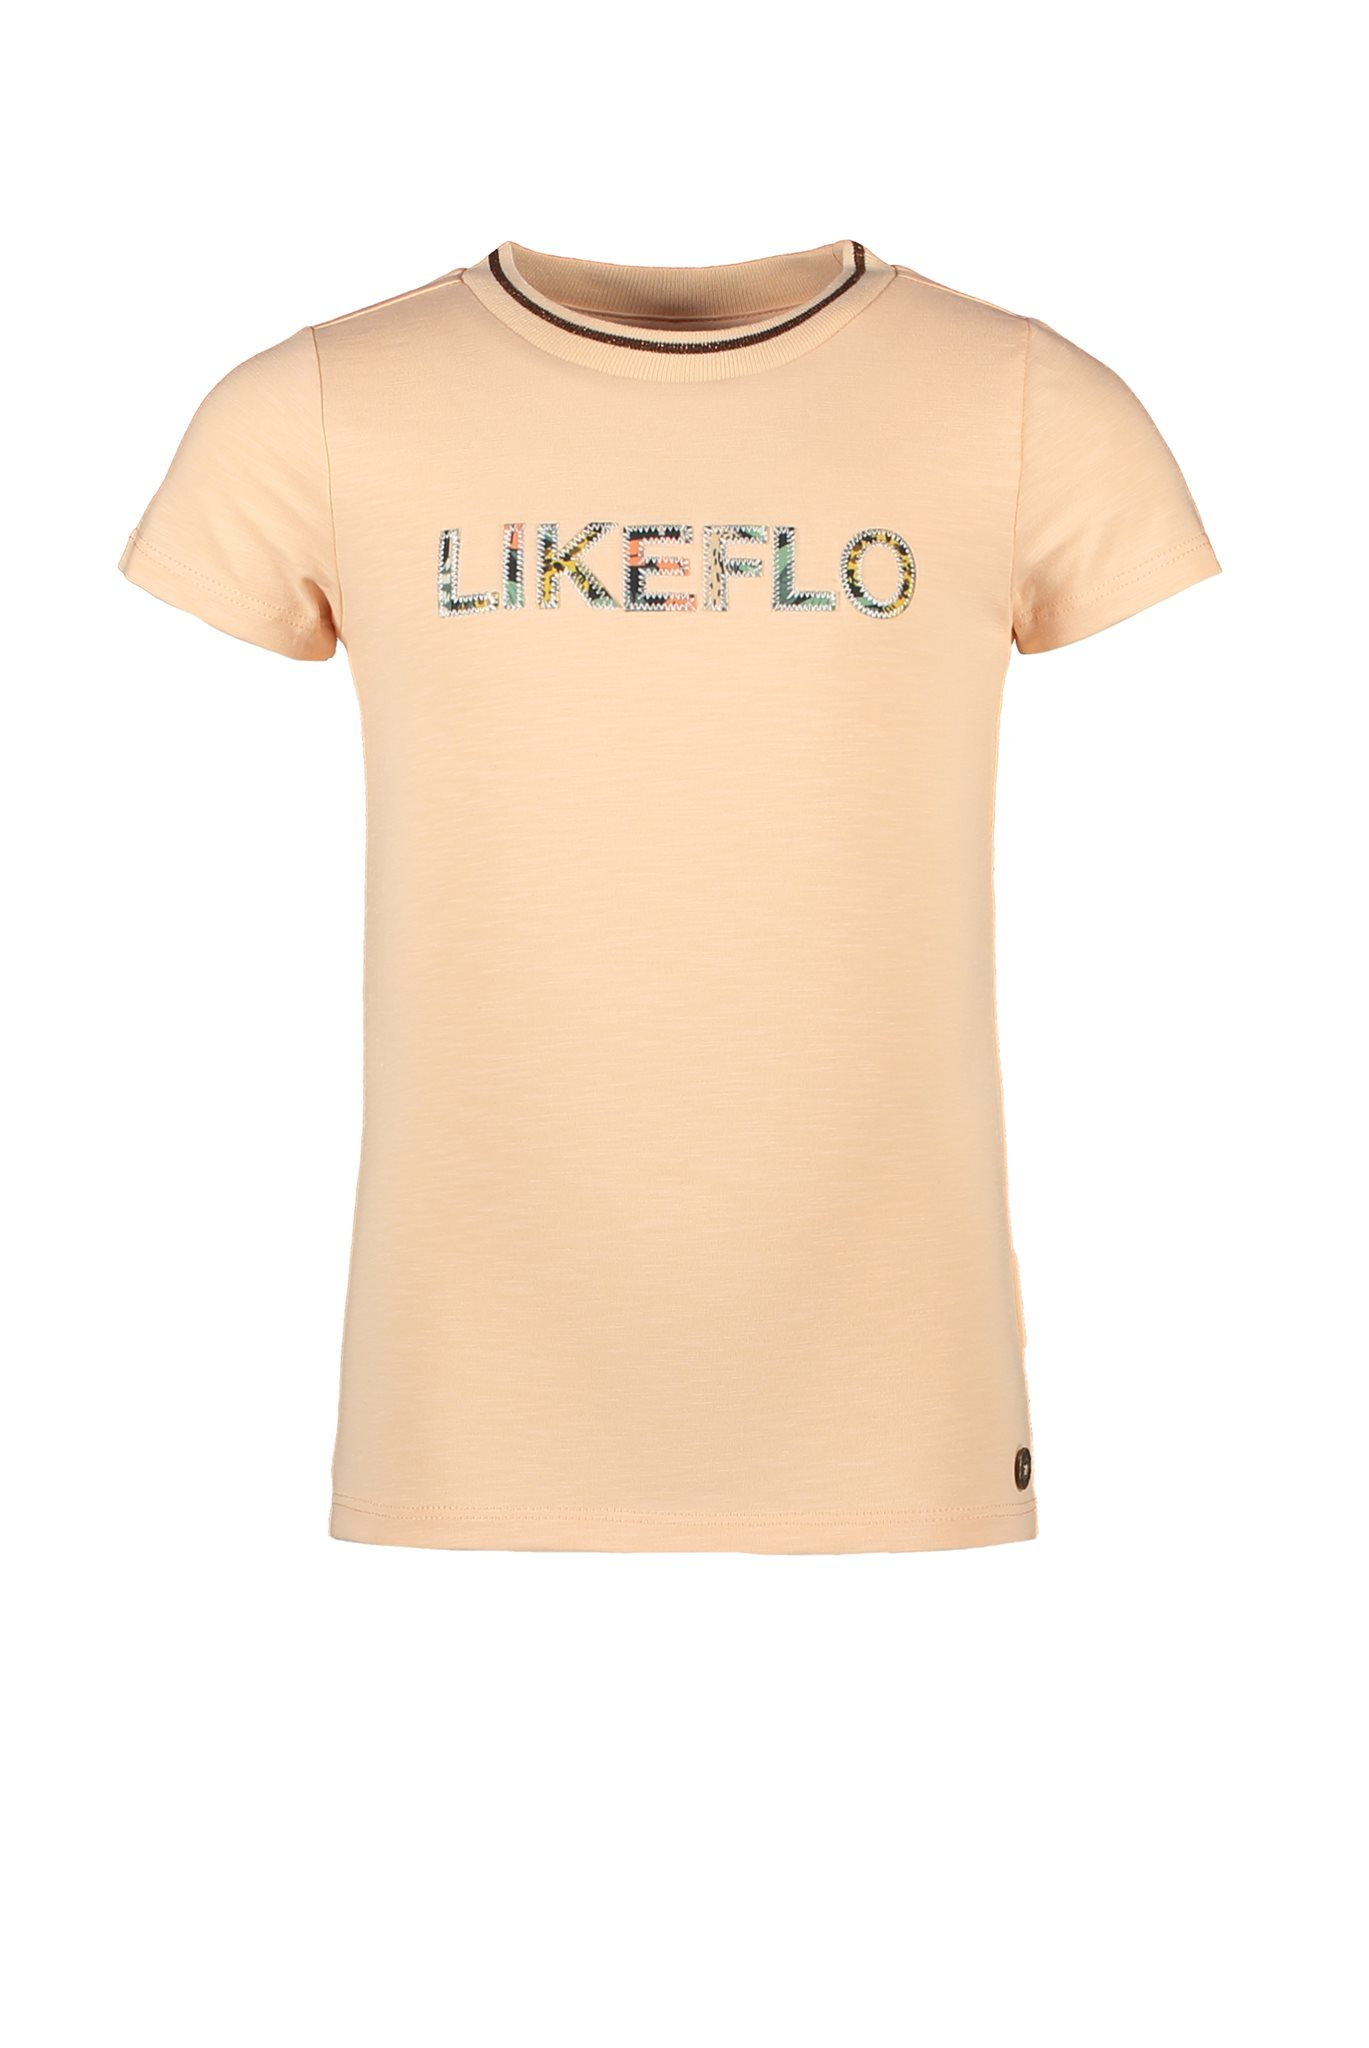 Like Flo t-shirt